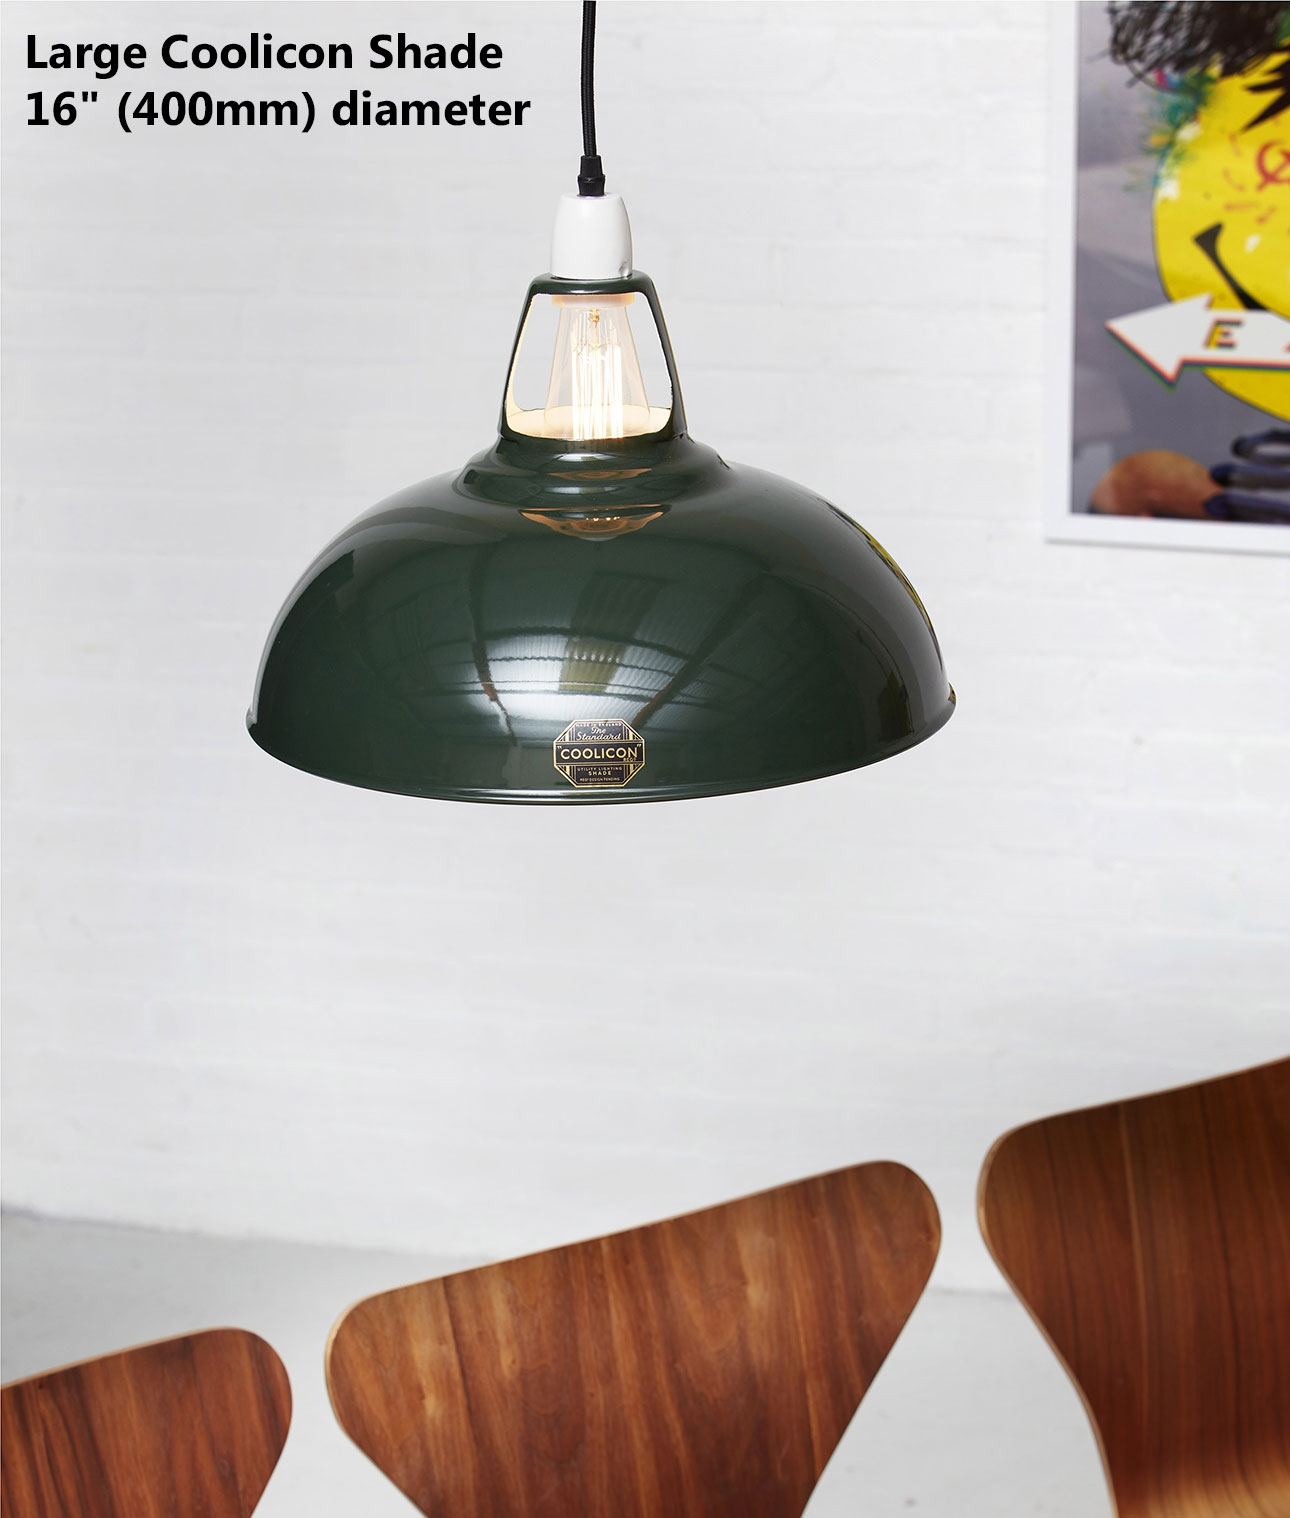 Original coolicon enamel steel lampshades earth colours coolicon enamel steel lamp shades earth colours mozeypictures Choice Image